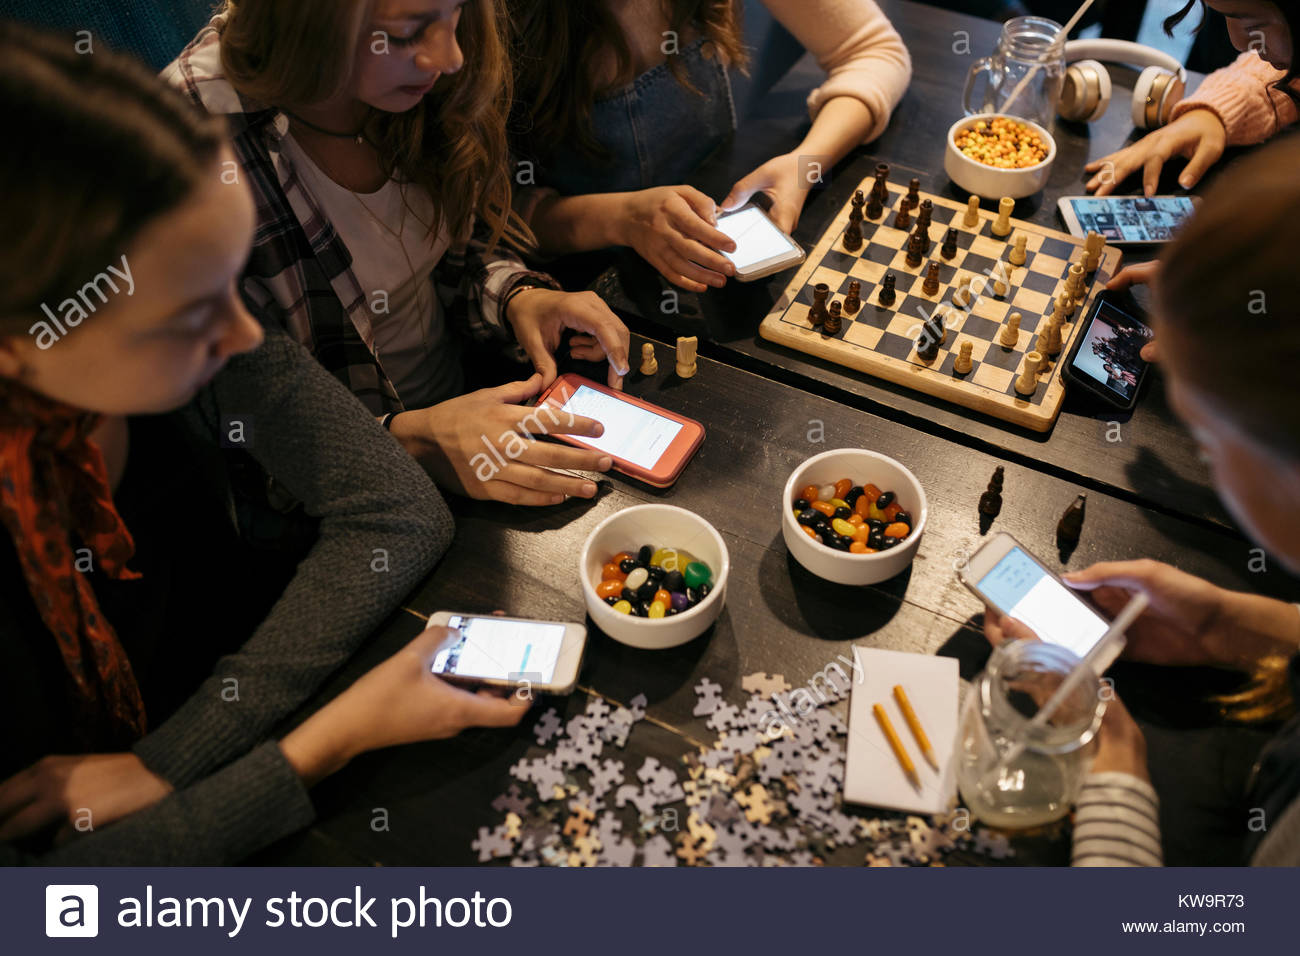 Tween girl friends playing chess,assembling jigsaw puzzle and texting with smart phones at table - Stock Image